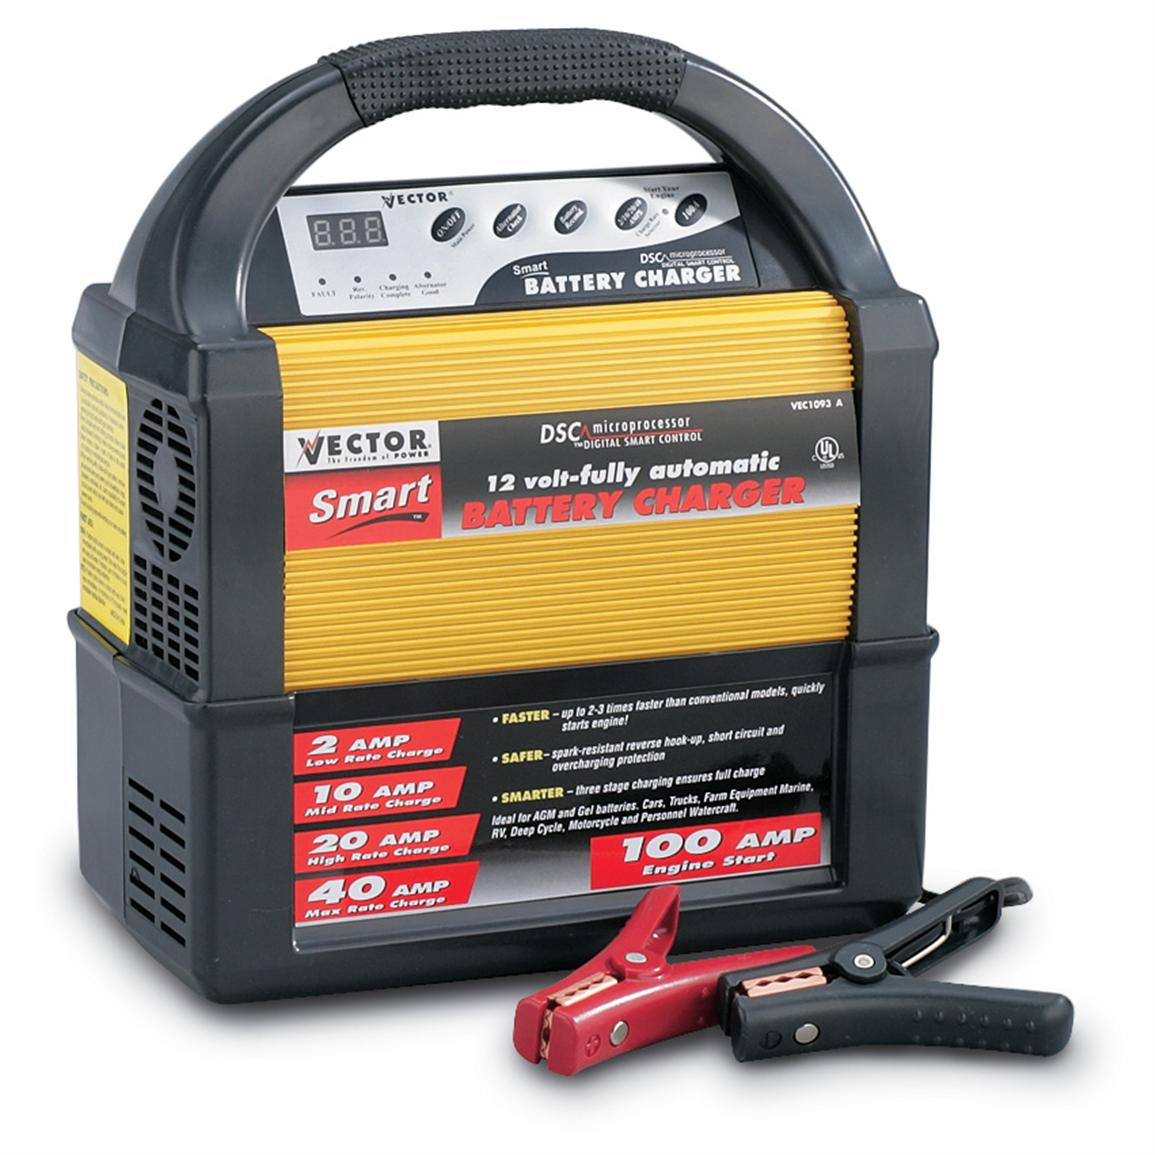 1155x1155 2102040 Amp Charger With 100 Amp Engine Start